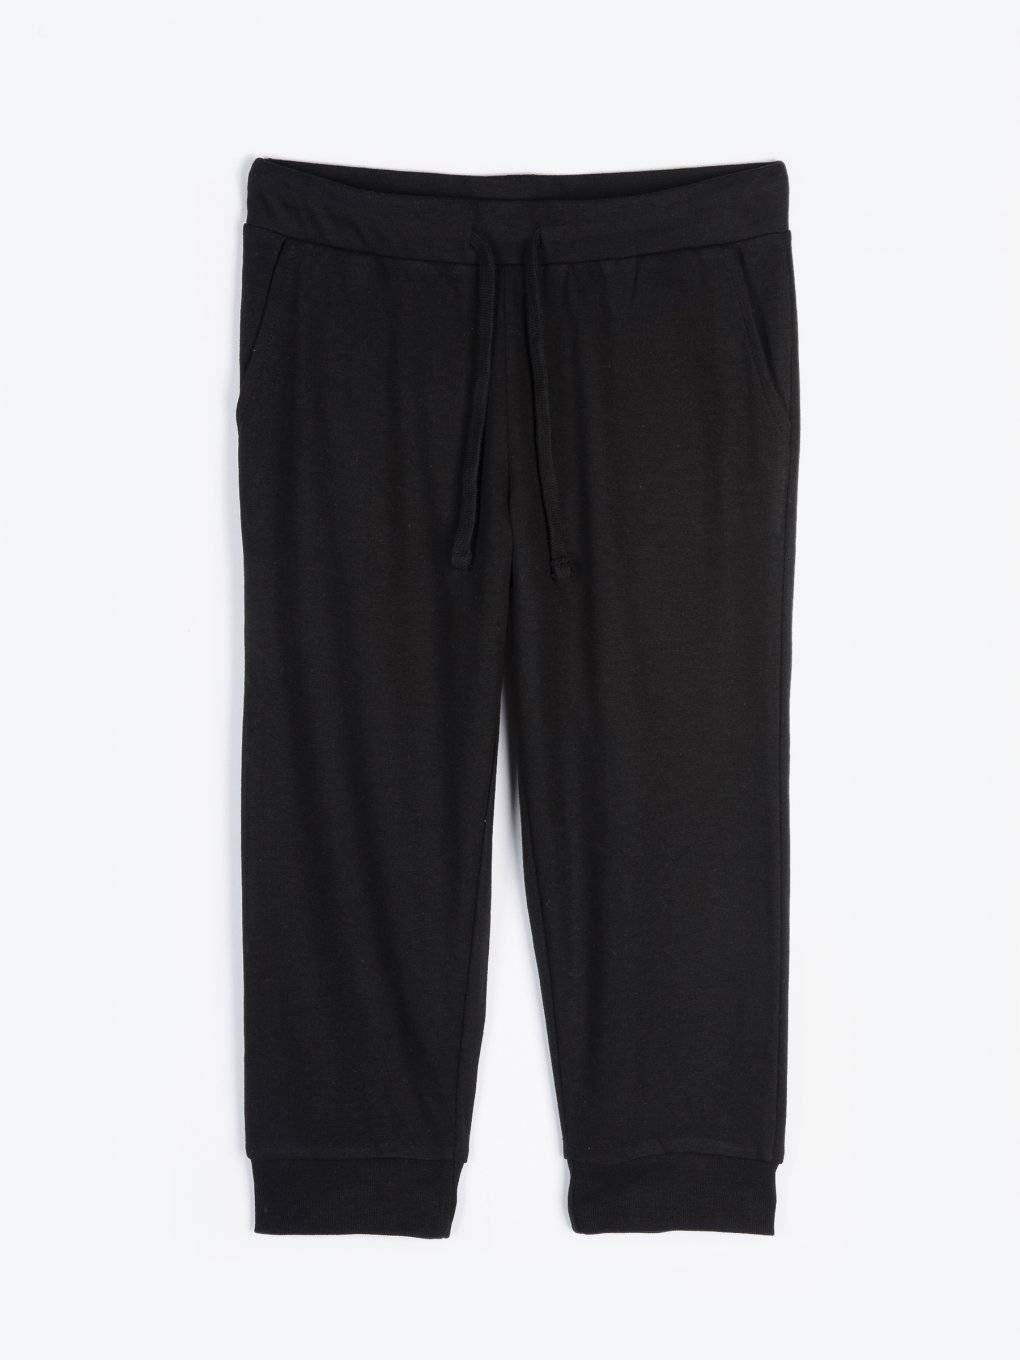 Basic 3/4 leg sweatpants